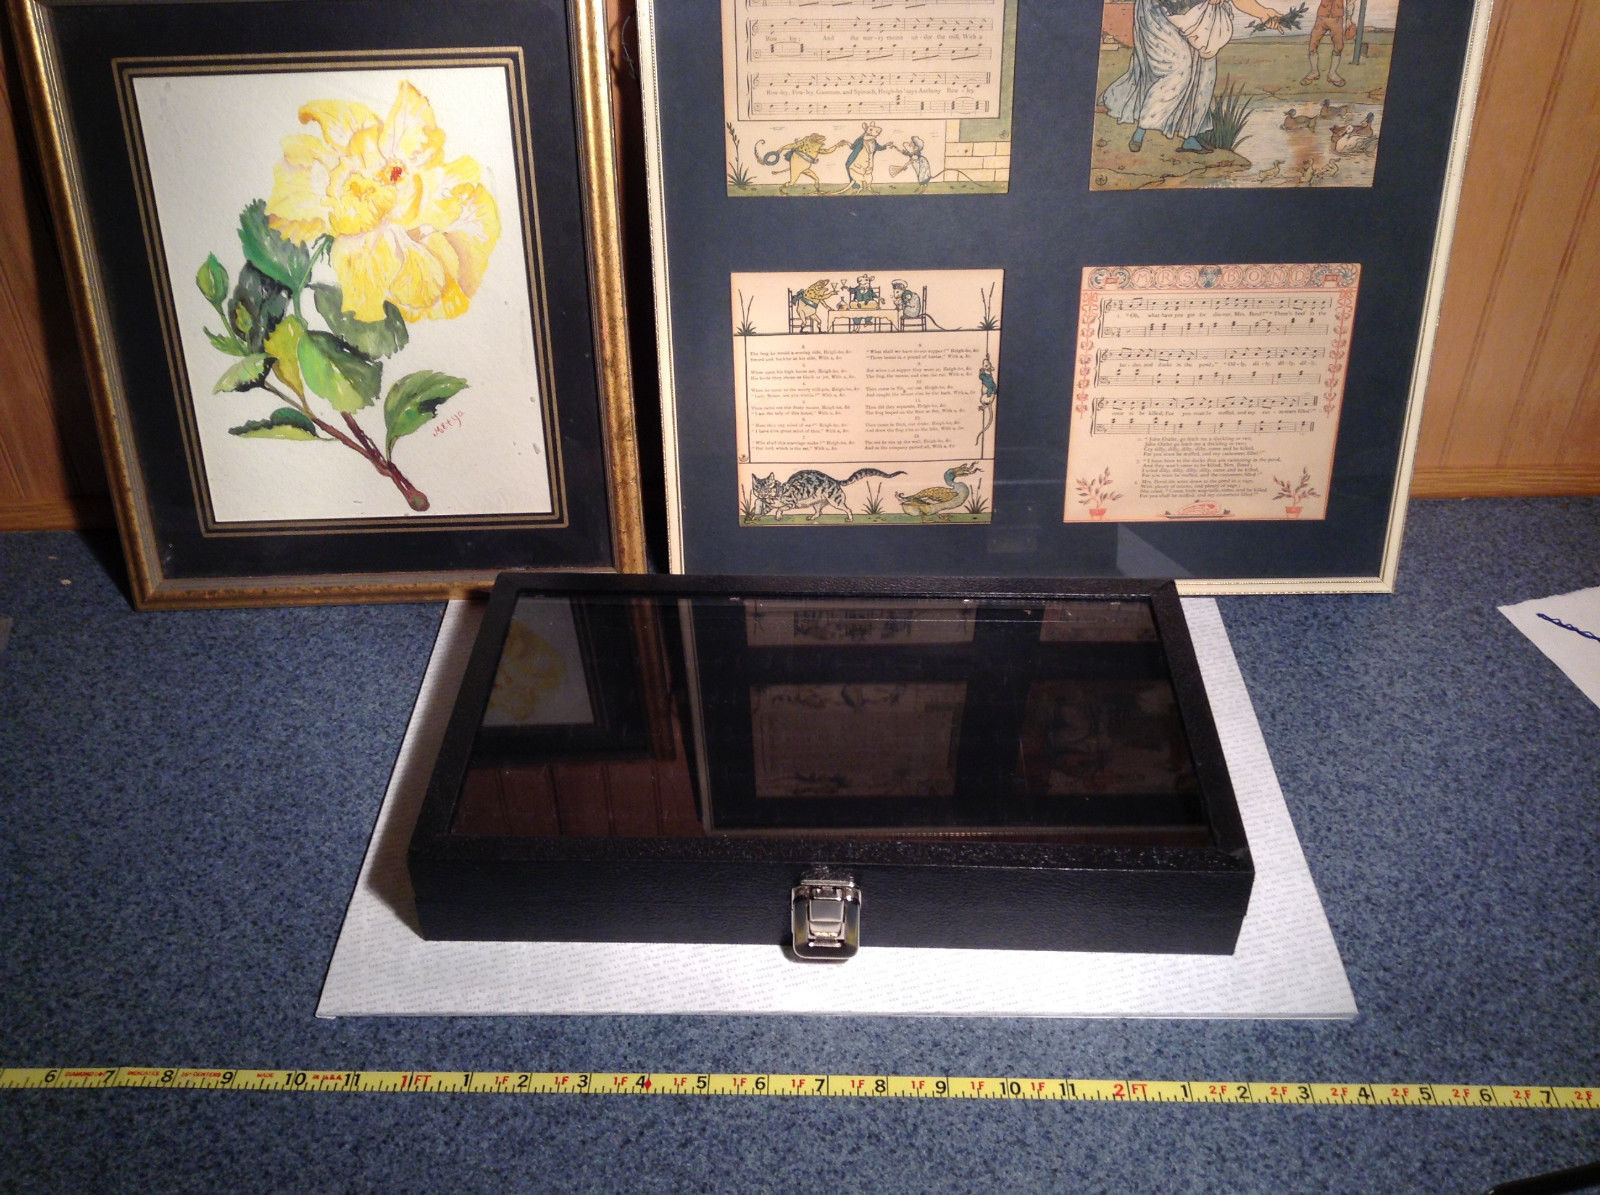 Black Ring Display Case with Foam Padding and Silver Latch for Closing